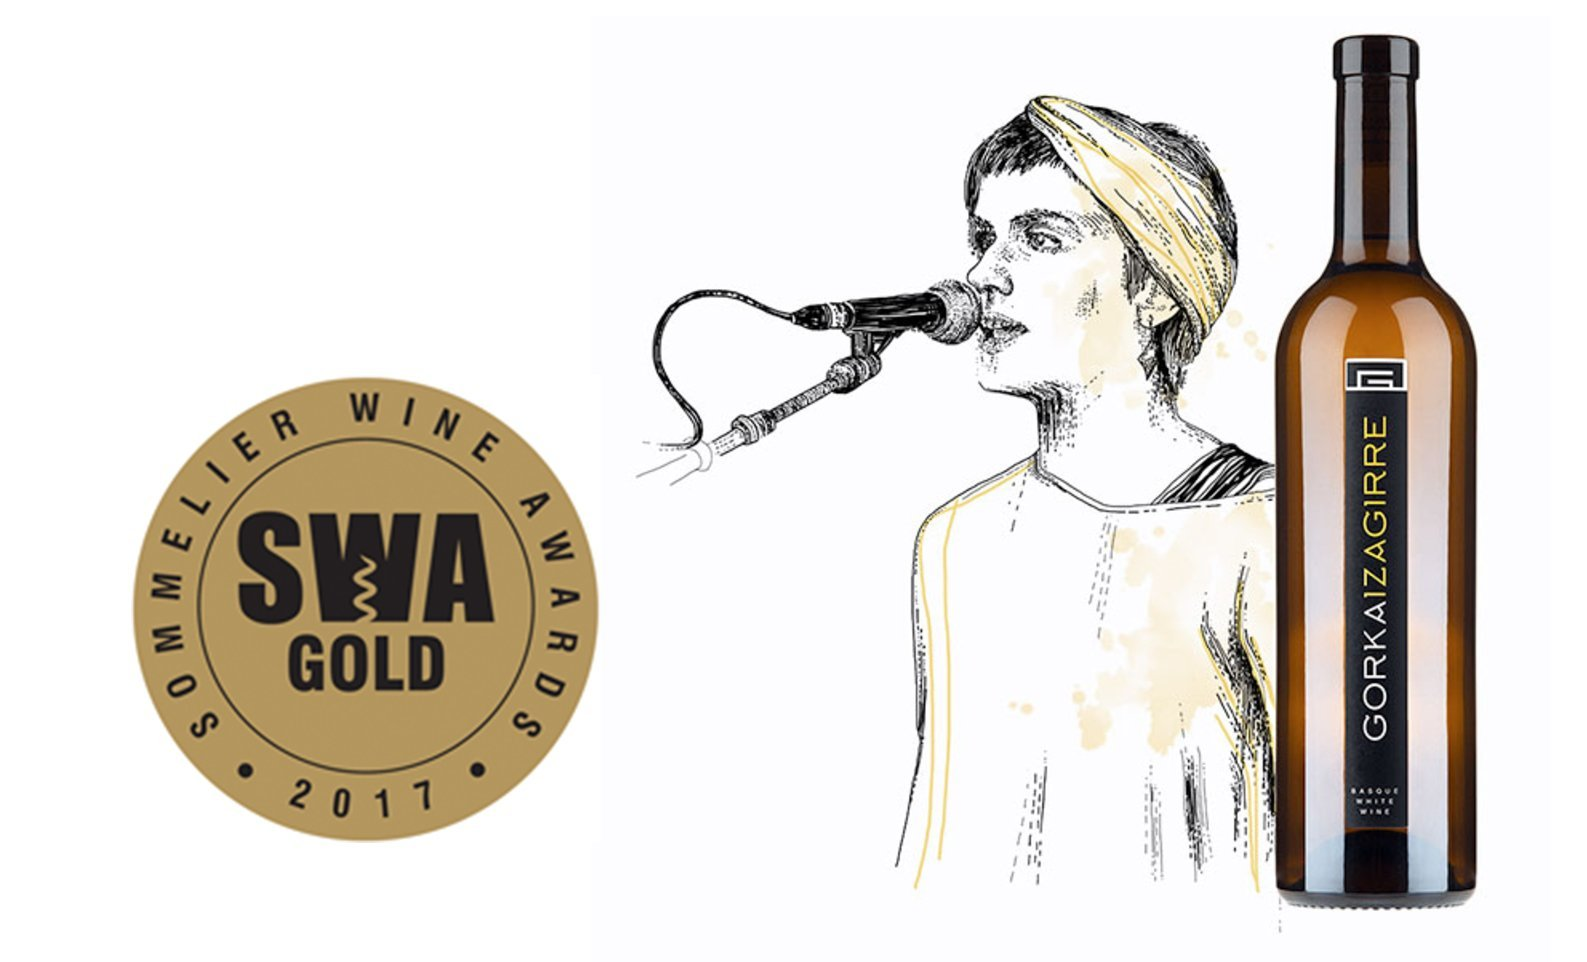 Gorka Izagirre white wine wins a golden medal at the 2017 Sommelier Wine Awards